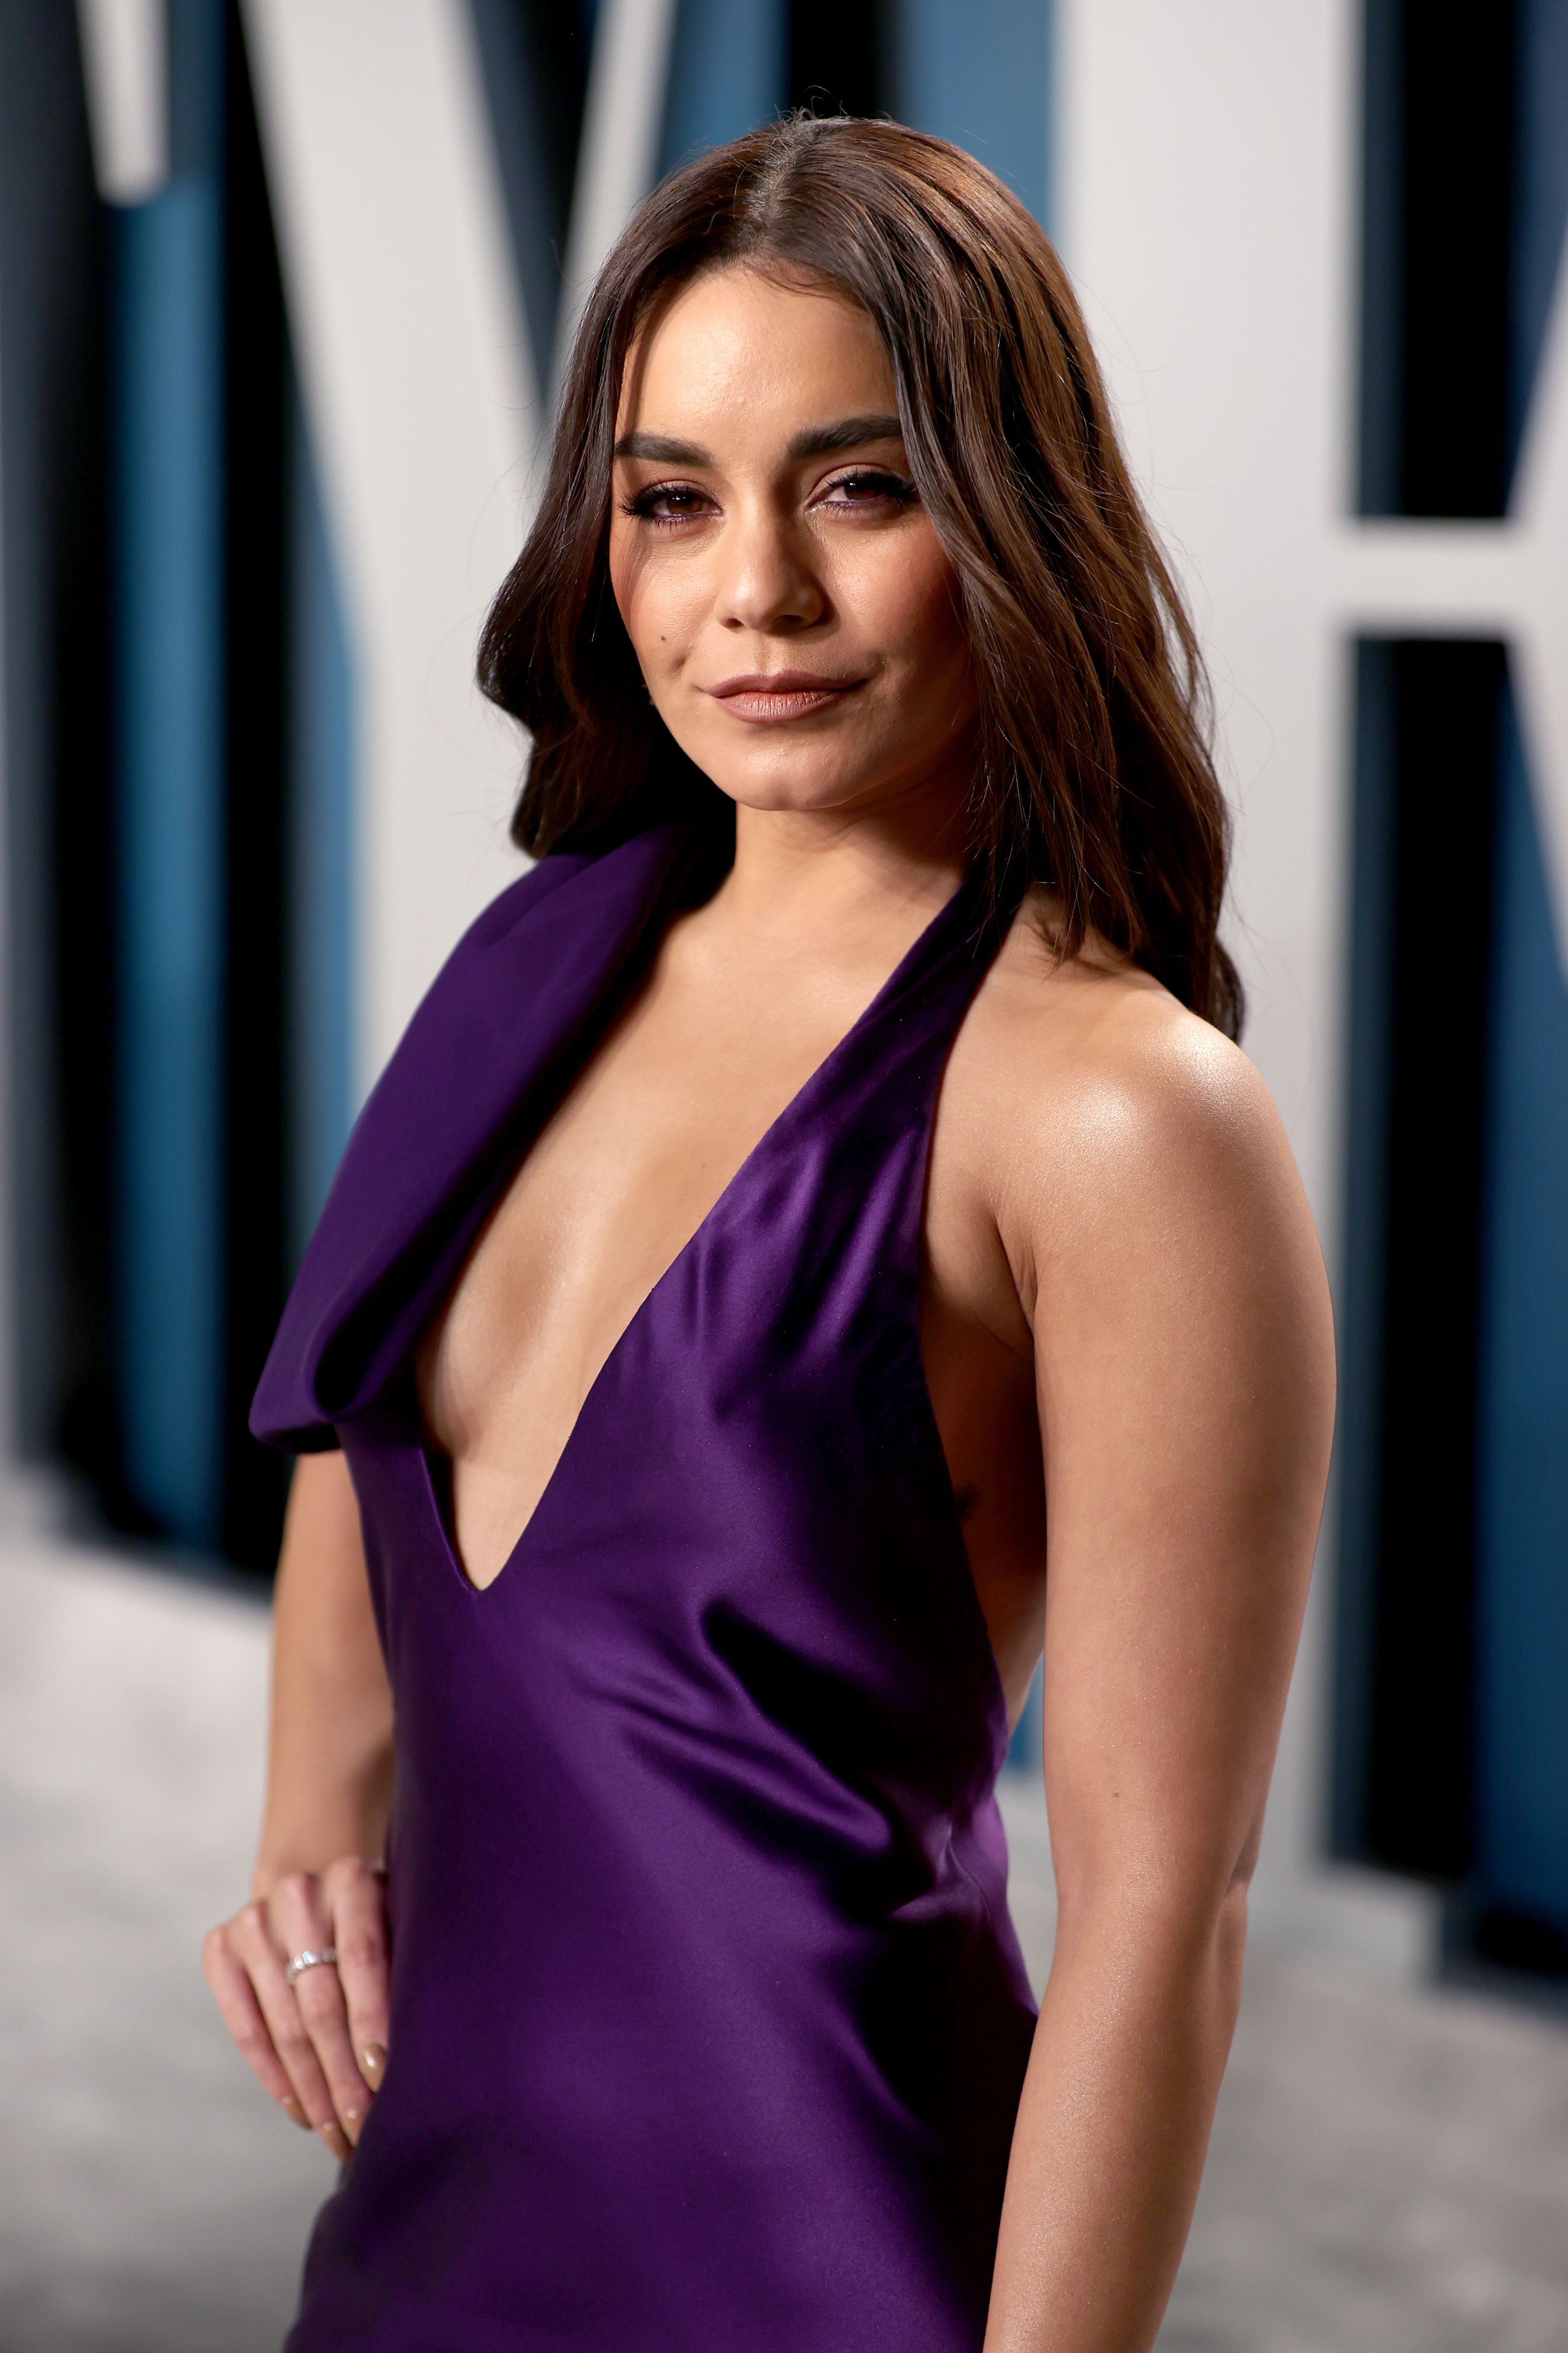 Vanessa Hudgens' Style Evolution, From Her Disney Days to Now